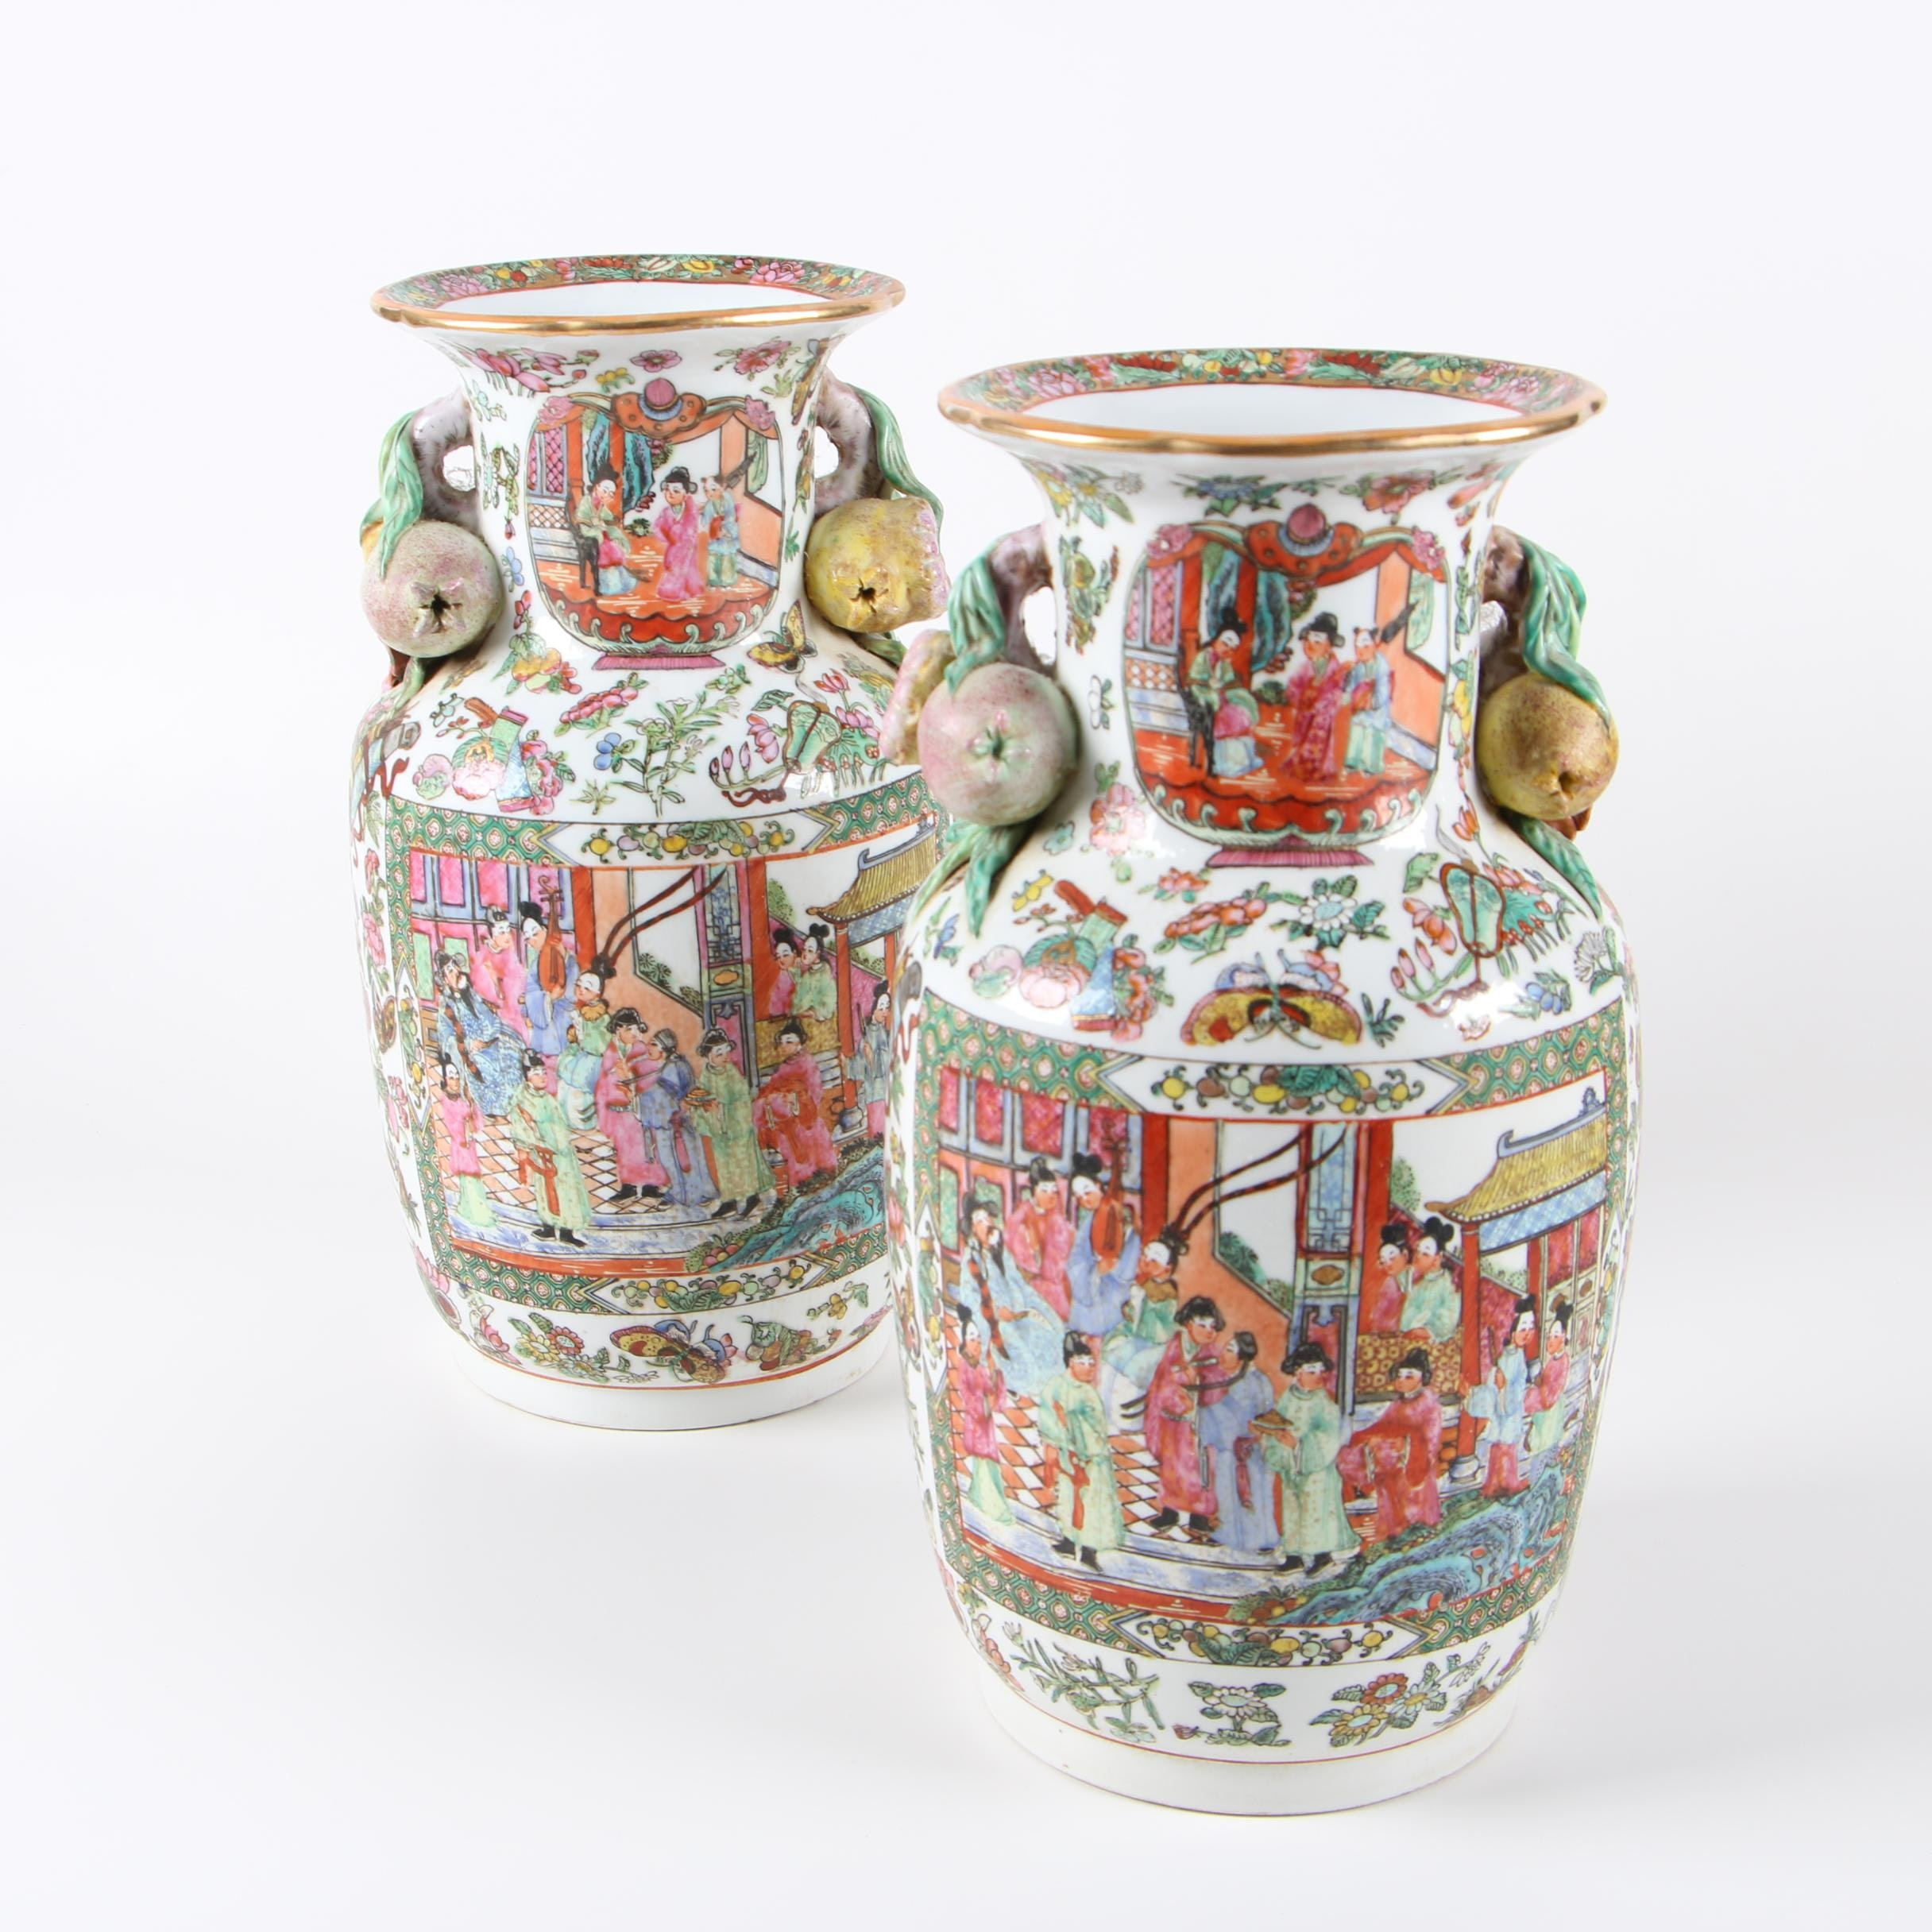 Chinese Rose Medallion Porcelain Vases with Peach Handles